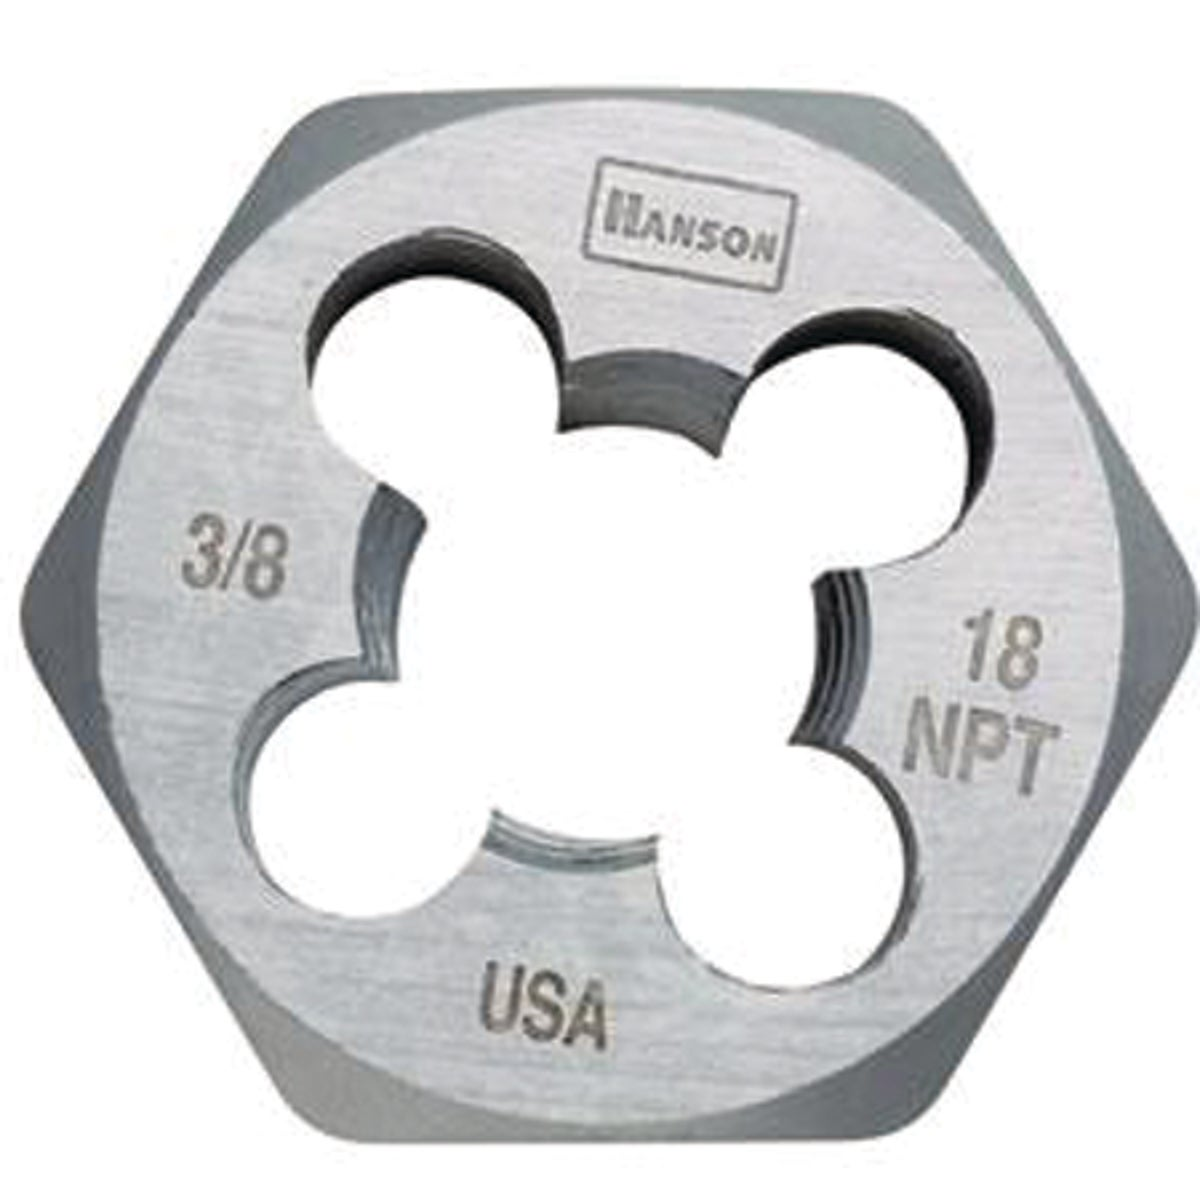 3/8X18 HEXAGON PIPE DIE - 7004 by Irwin Industr Tool